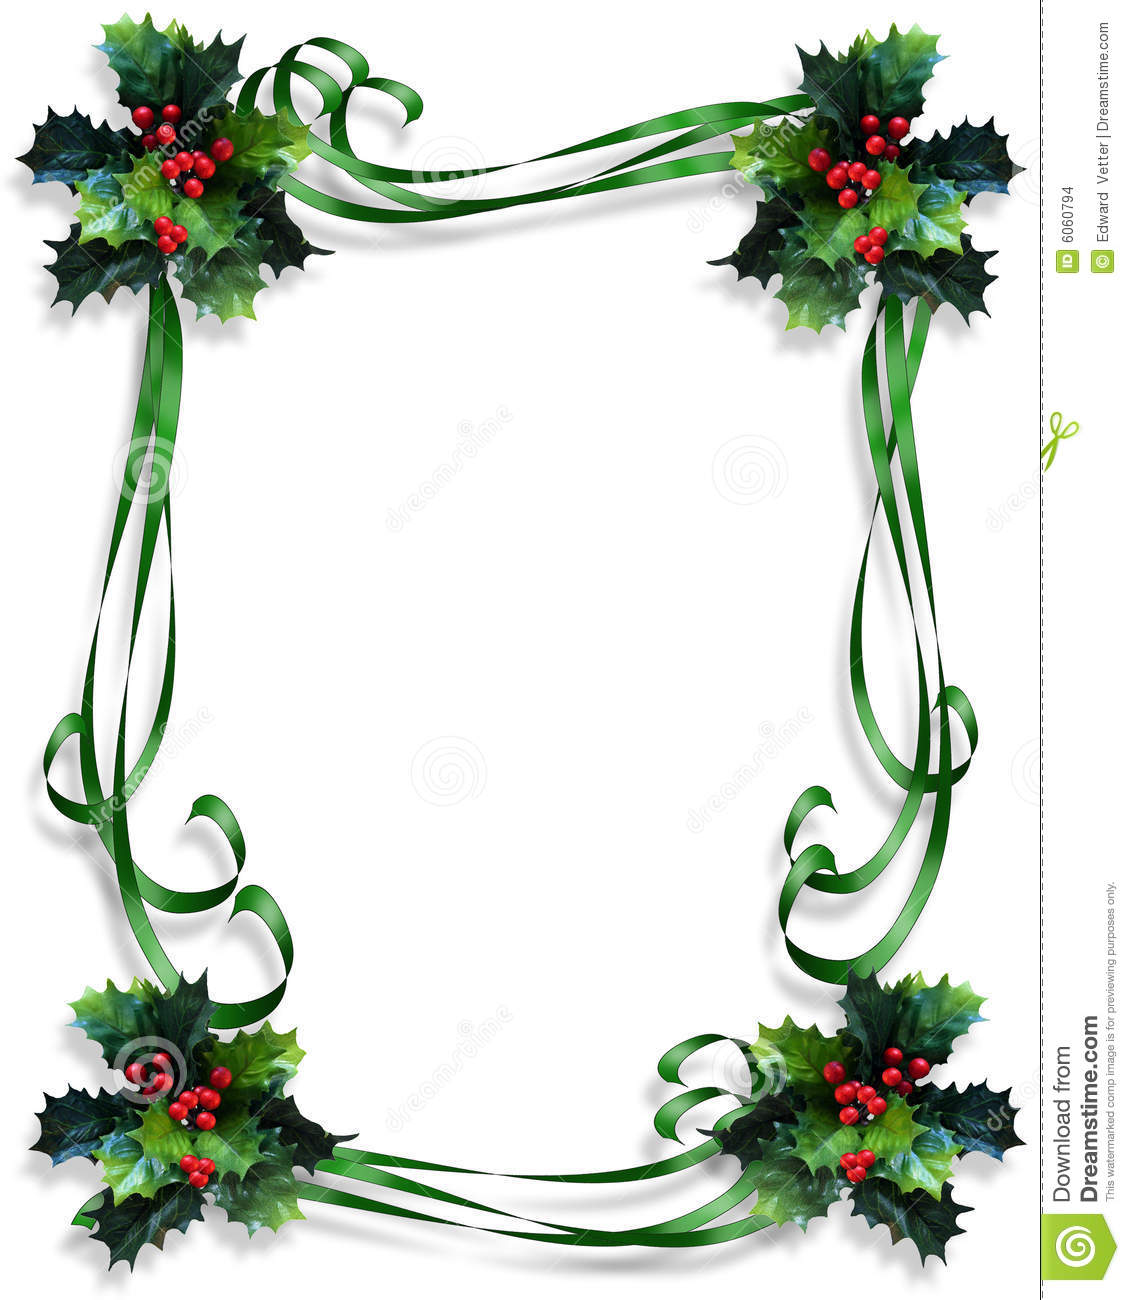 Christmas Border Holly And Ribbons Frame Stock Images - Image: 6060794